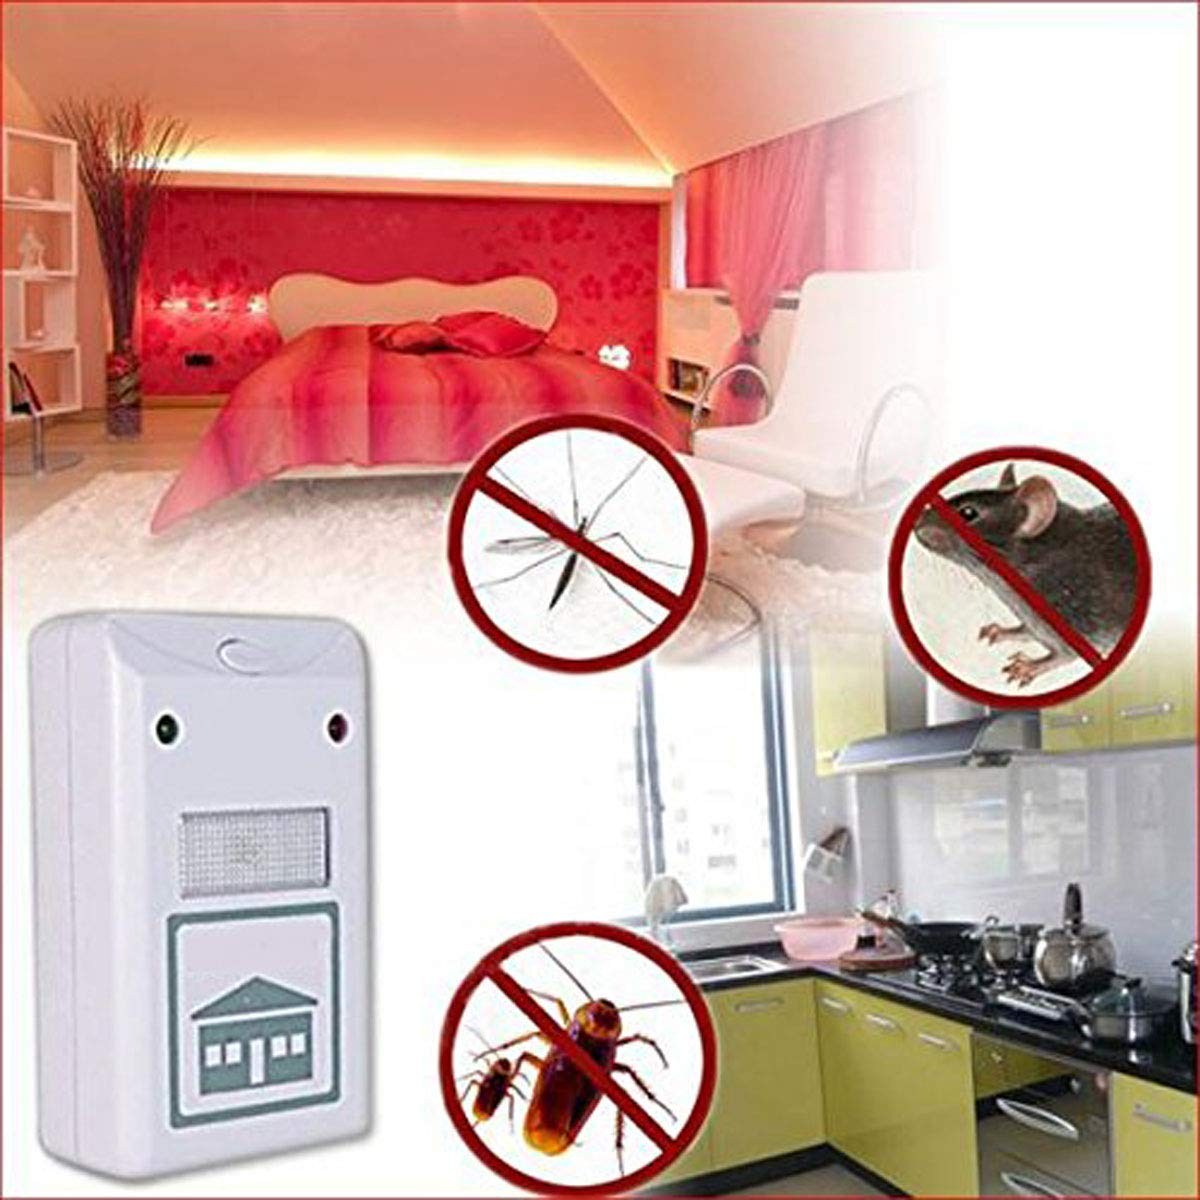 MYEDO Riddex Plus Pest Repeller Ultrasonic Repellent Electronic Deratization Plug Pest Control Against Mouse, Rat and Insects with Built in Night Light